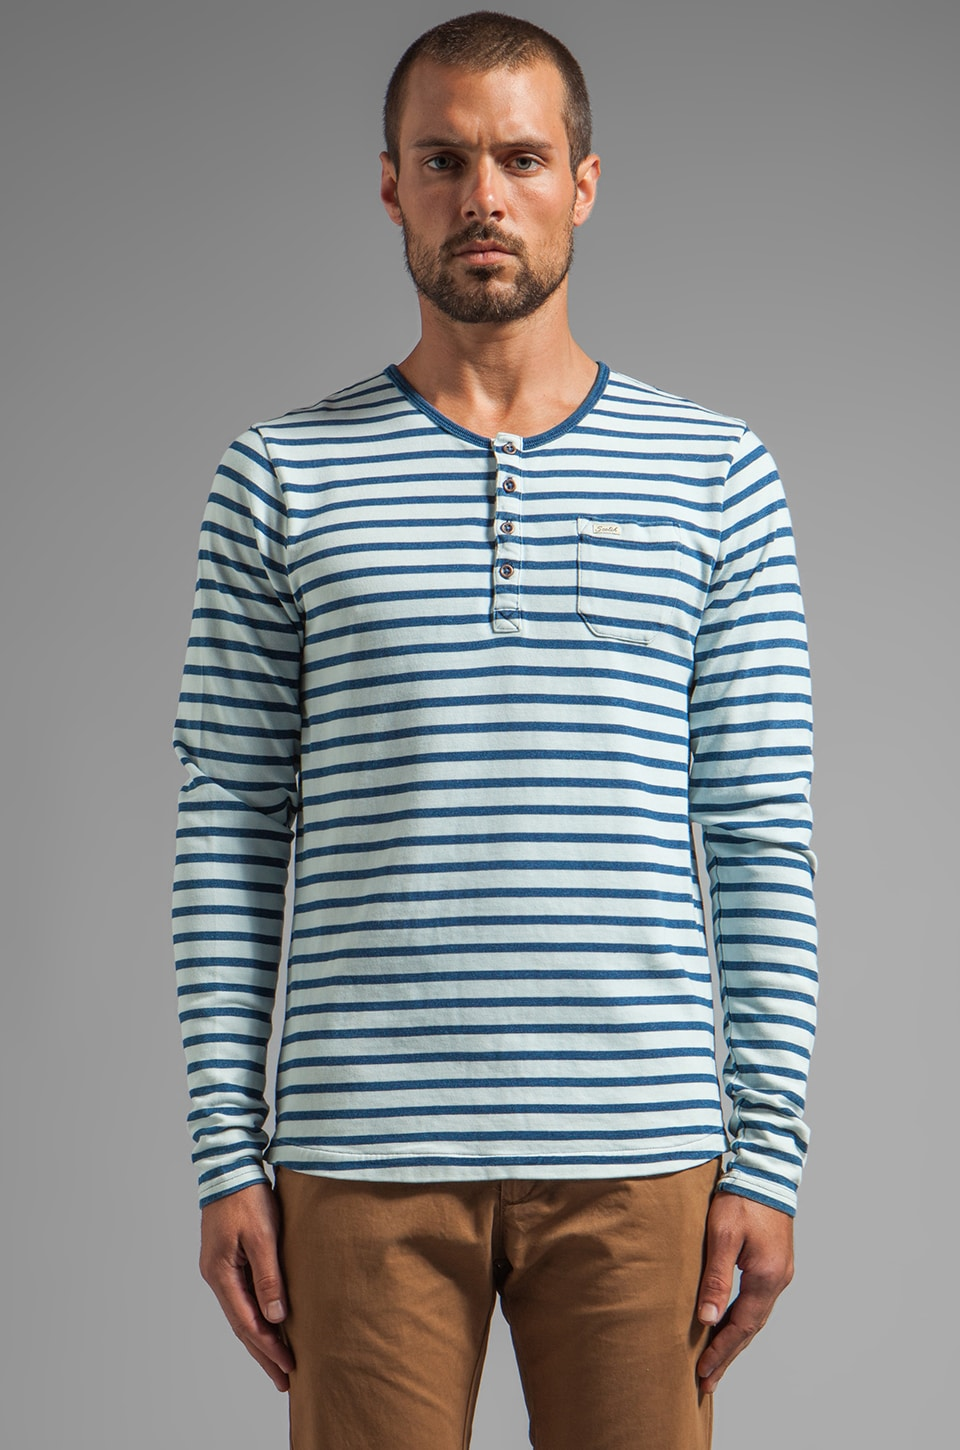 Scotch & Soda Granddad Striped in Indigo